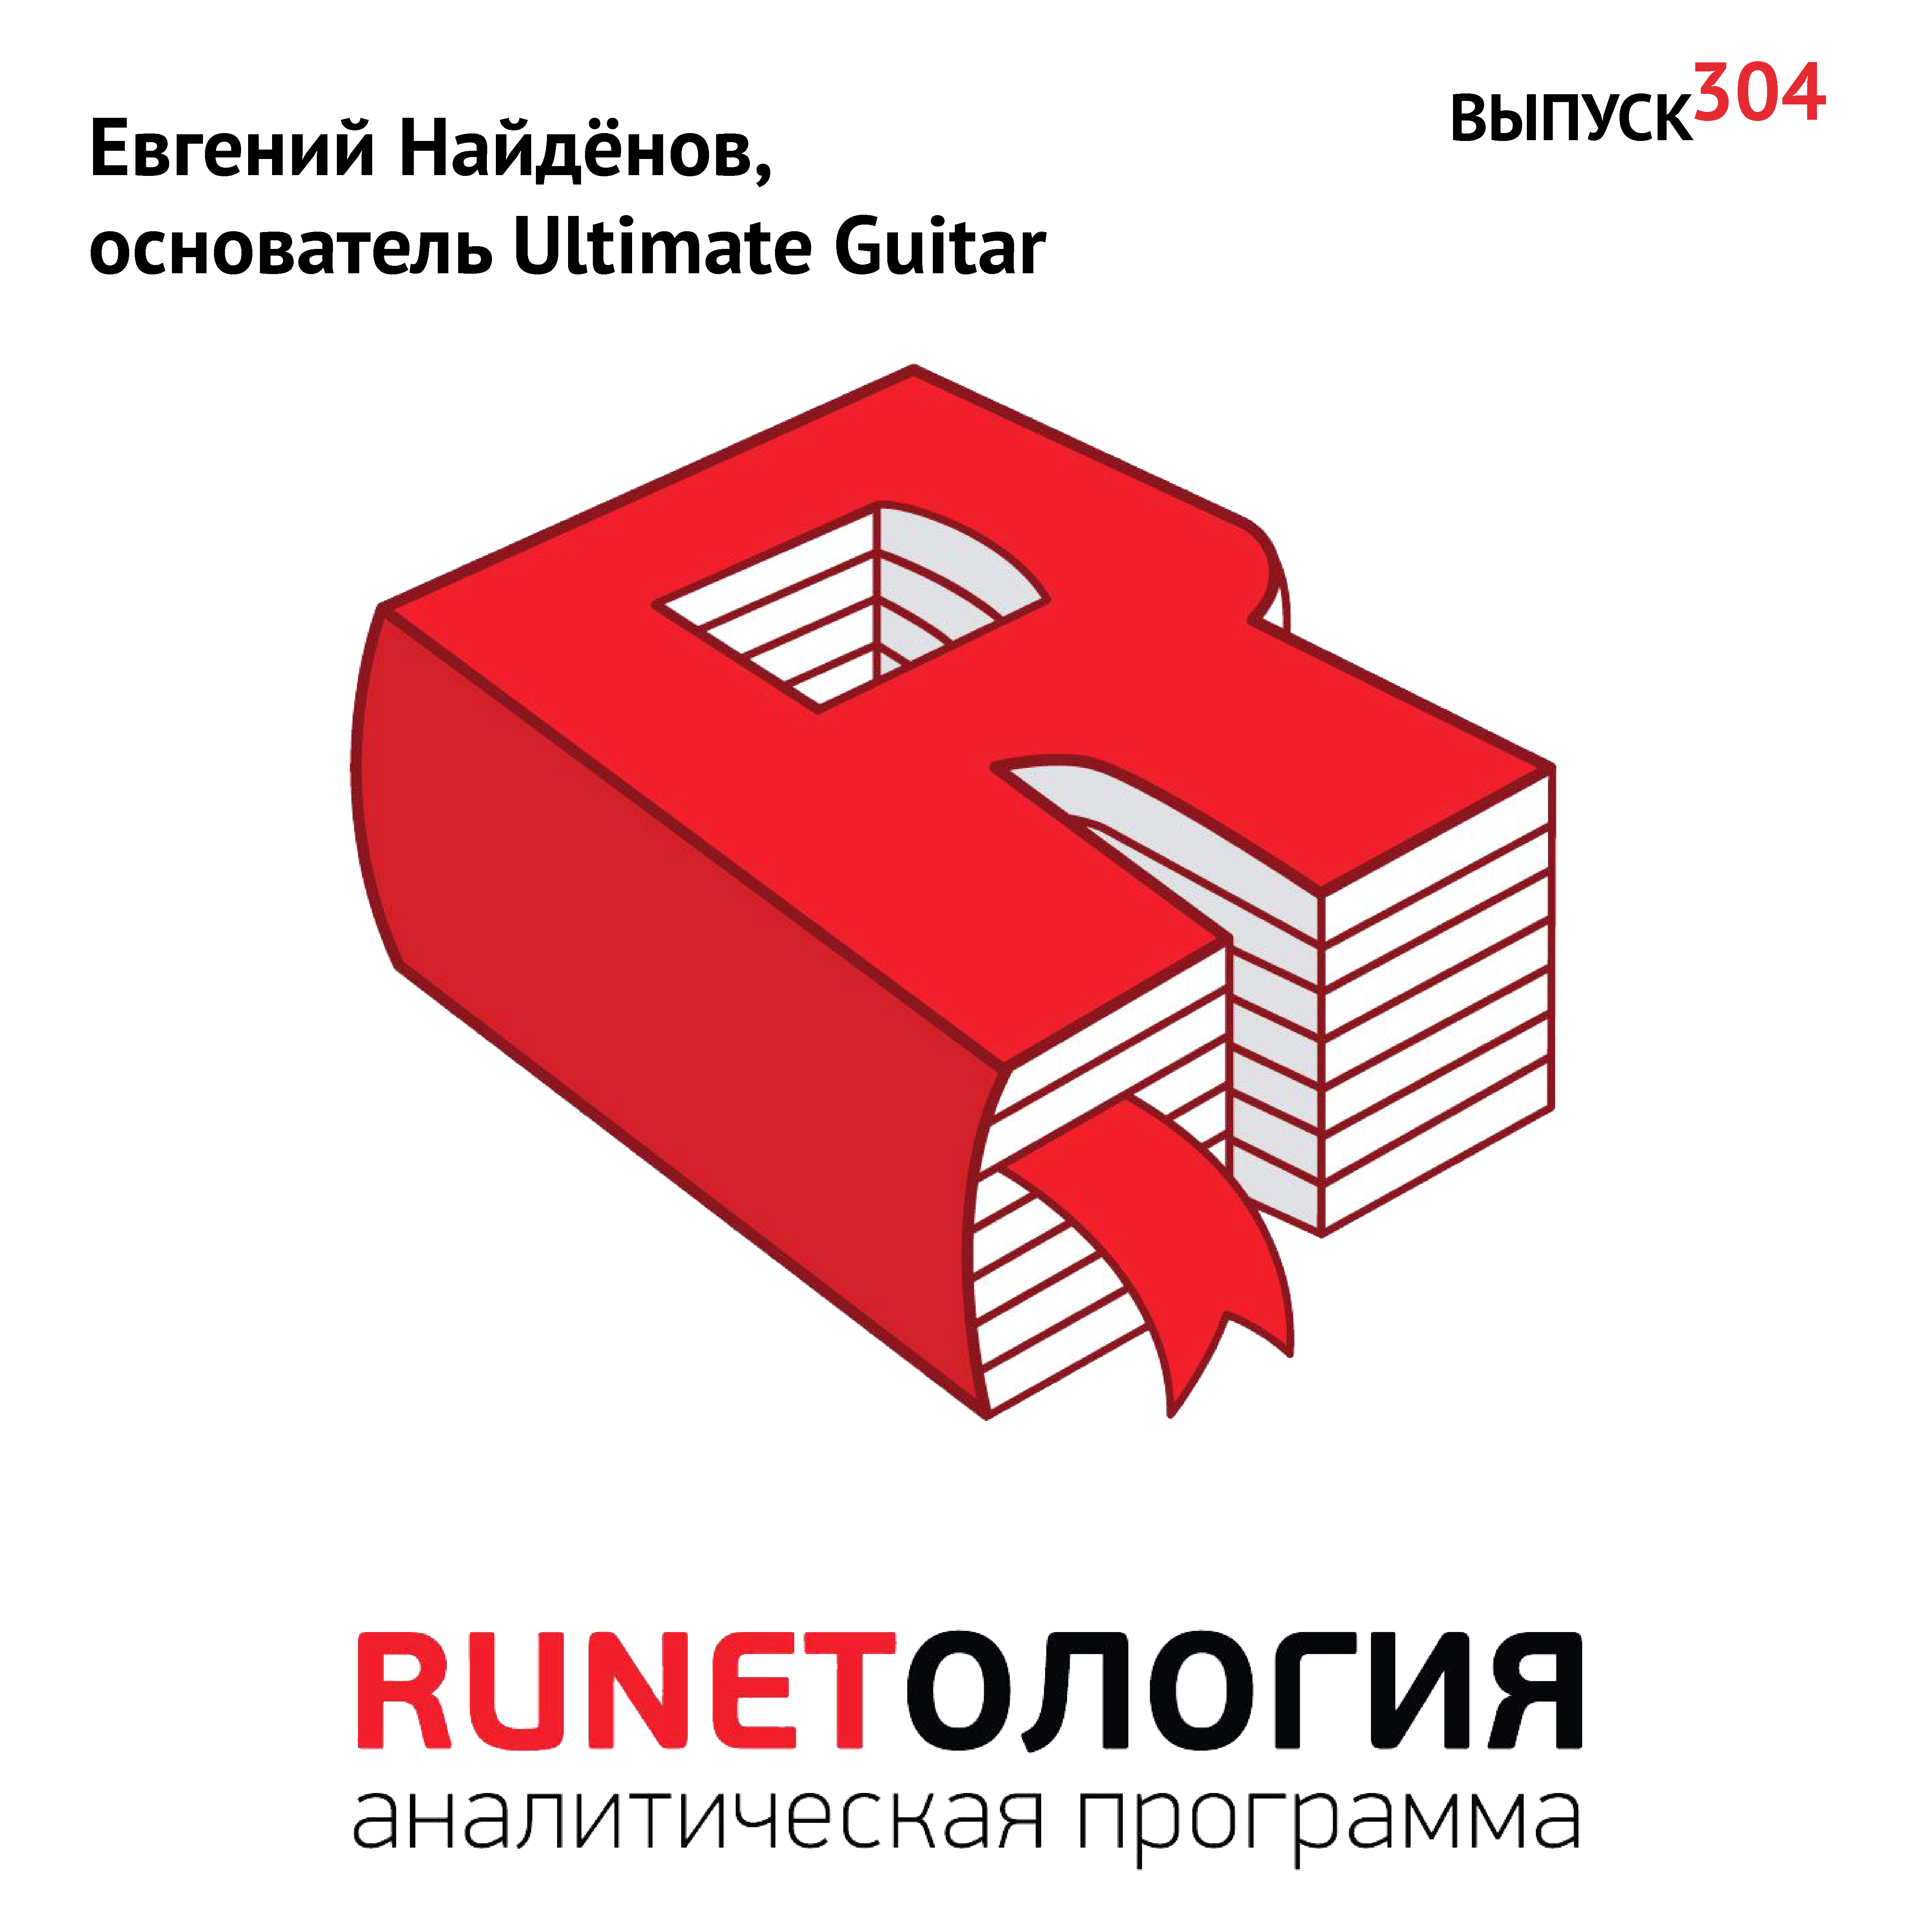 Максим Спиридонов Евгений Найдёнов, основатель Ultimate Guitar acoustic guitar neck fingerboard fretboard for guitar parts replacement rosewood zebrawood veneer